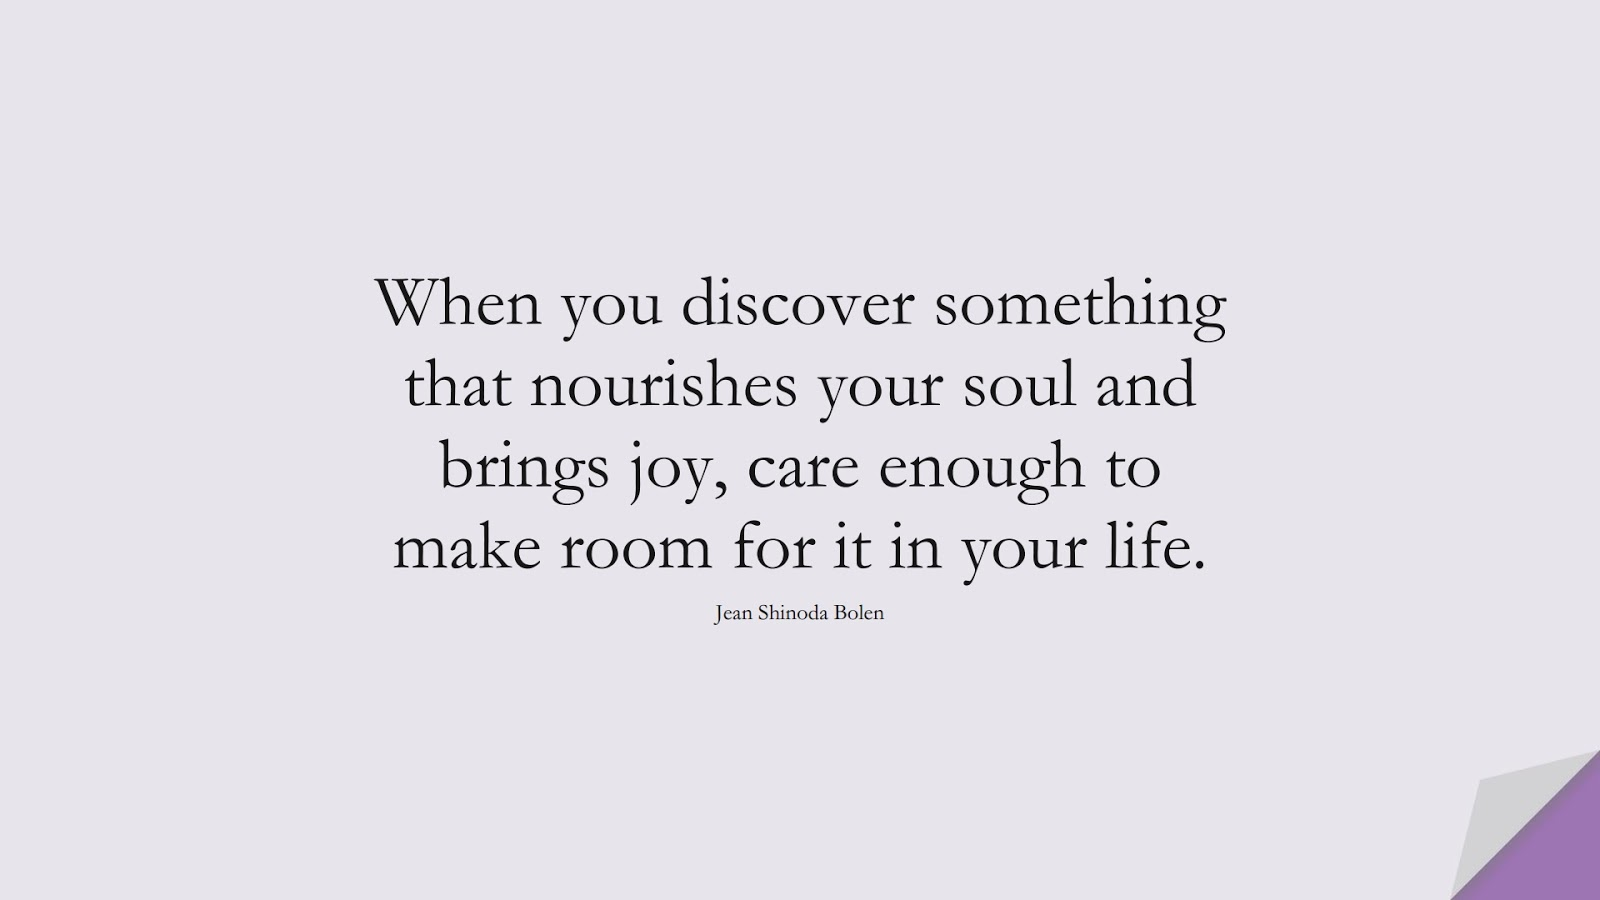 When you discover something that nourishes your soul and brings joy, care enough to make room for it in your life. (Jean Shinoda Bolen);  #HealthQuotes